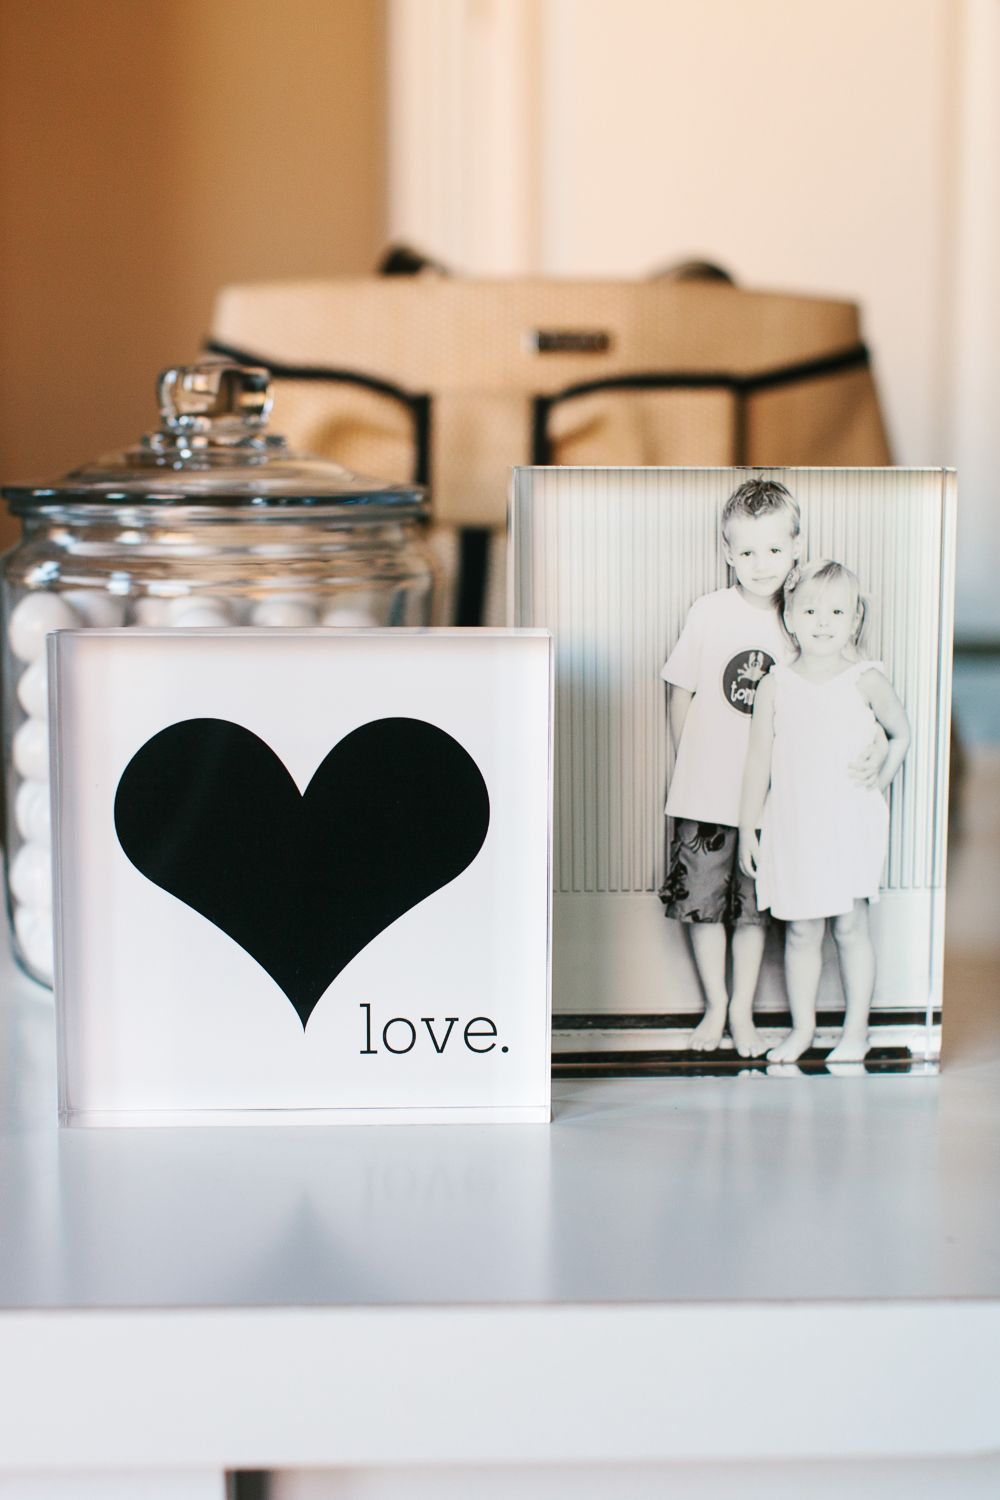 Getting Creative With Shutterfly Home Decor Acrylic Blocks Http Www